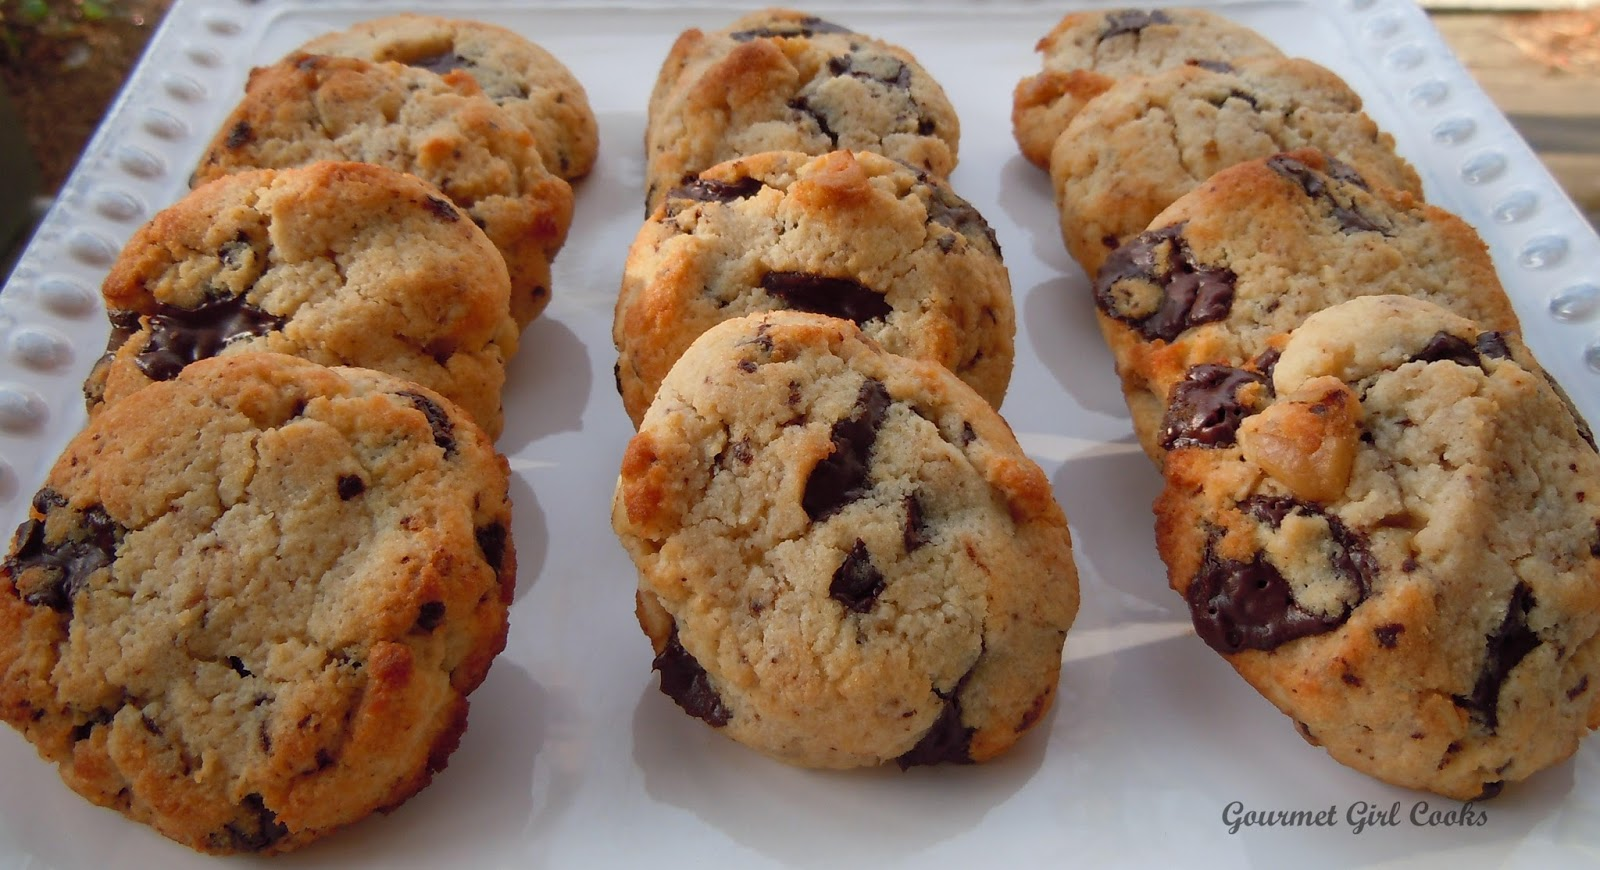 Gourmet Girl Cooks: Chocolate Chip Cookies at the Beach!